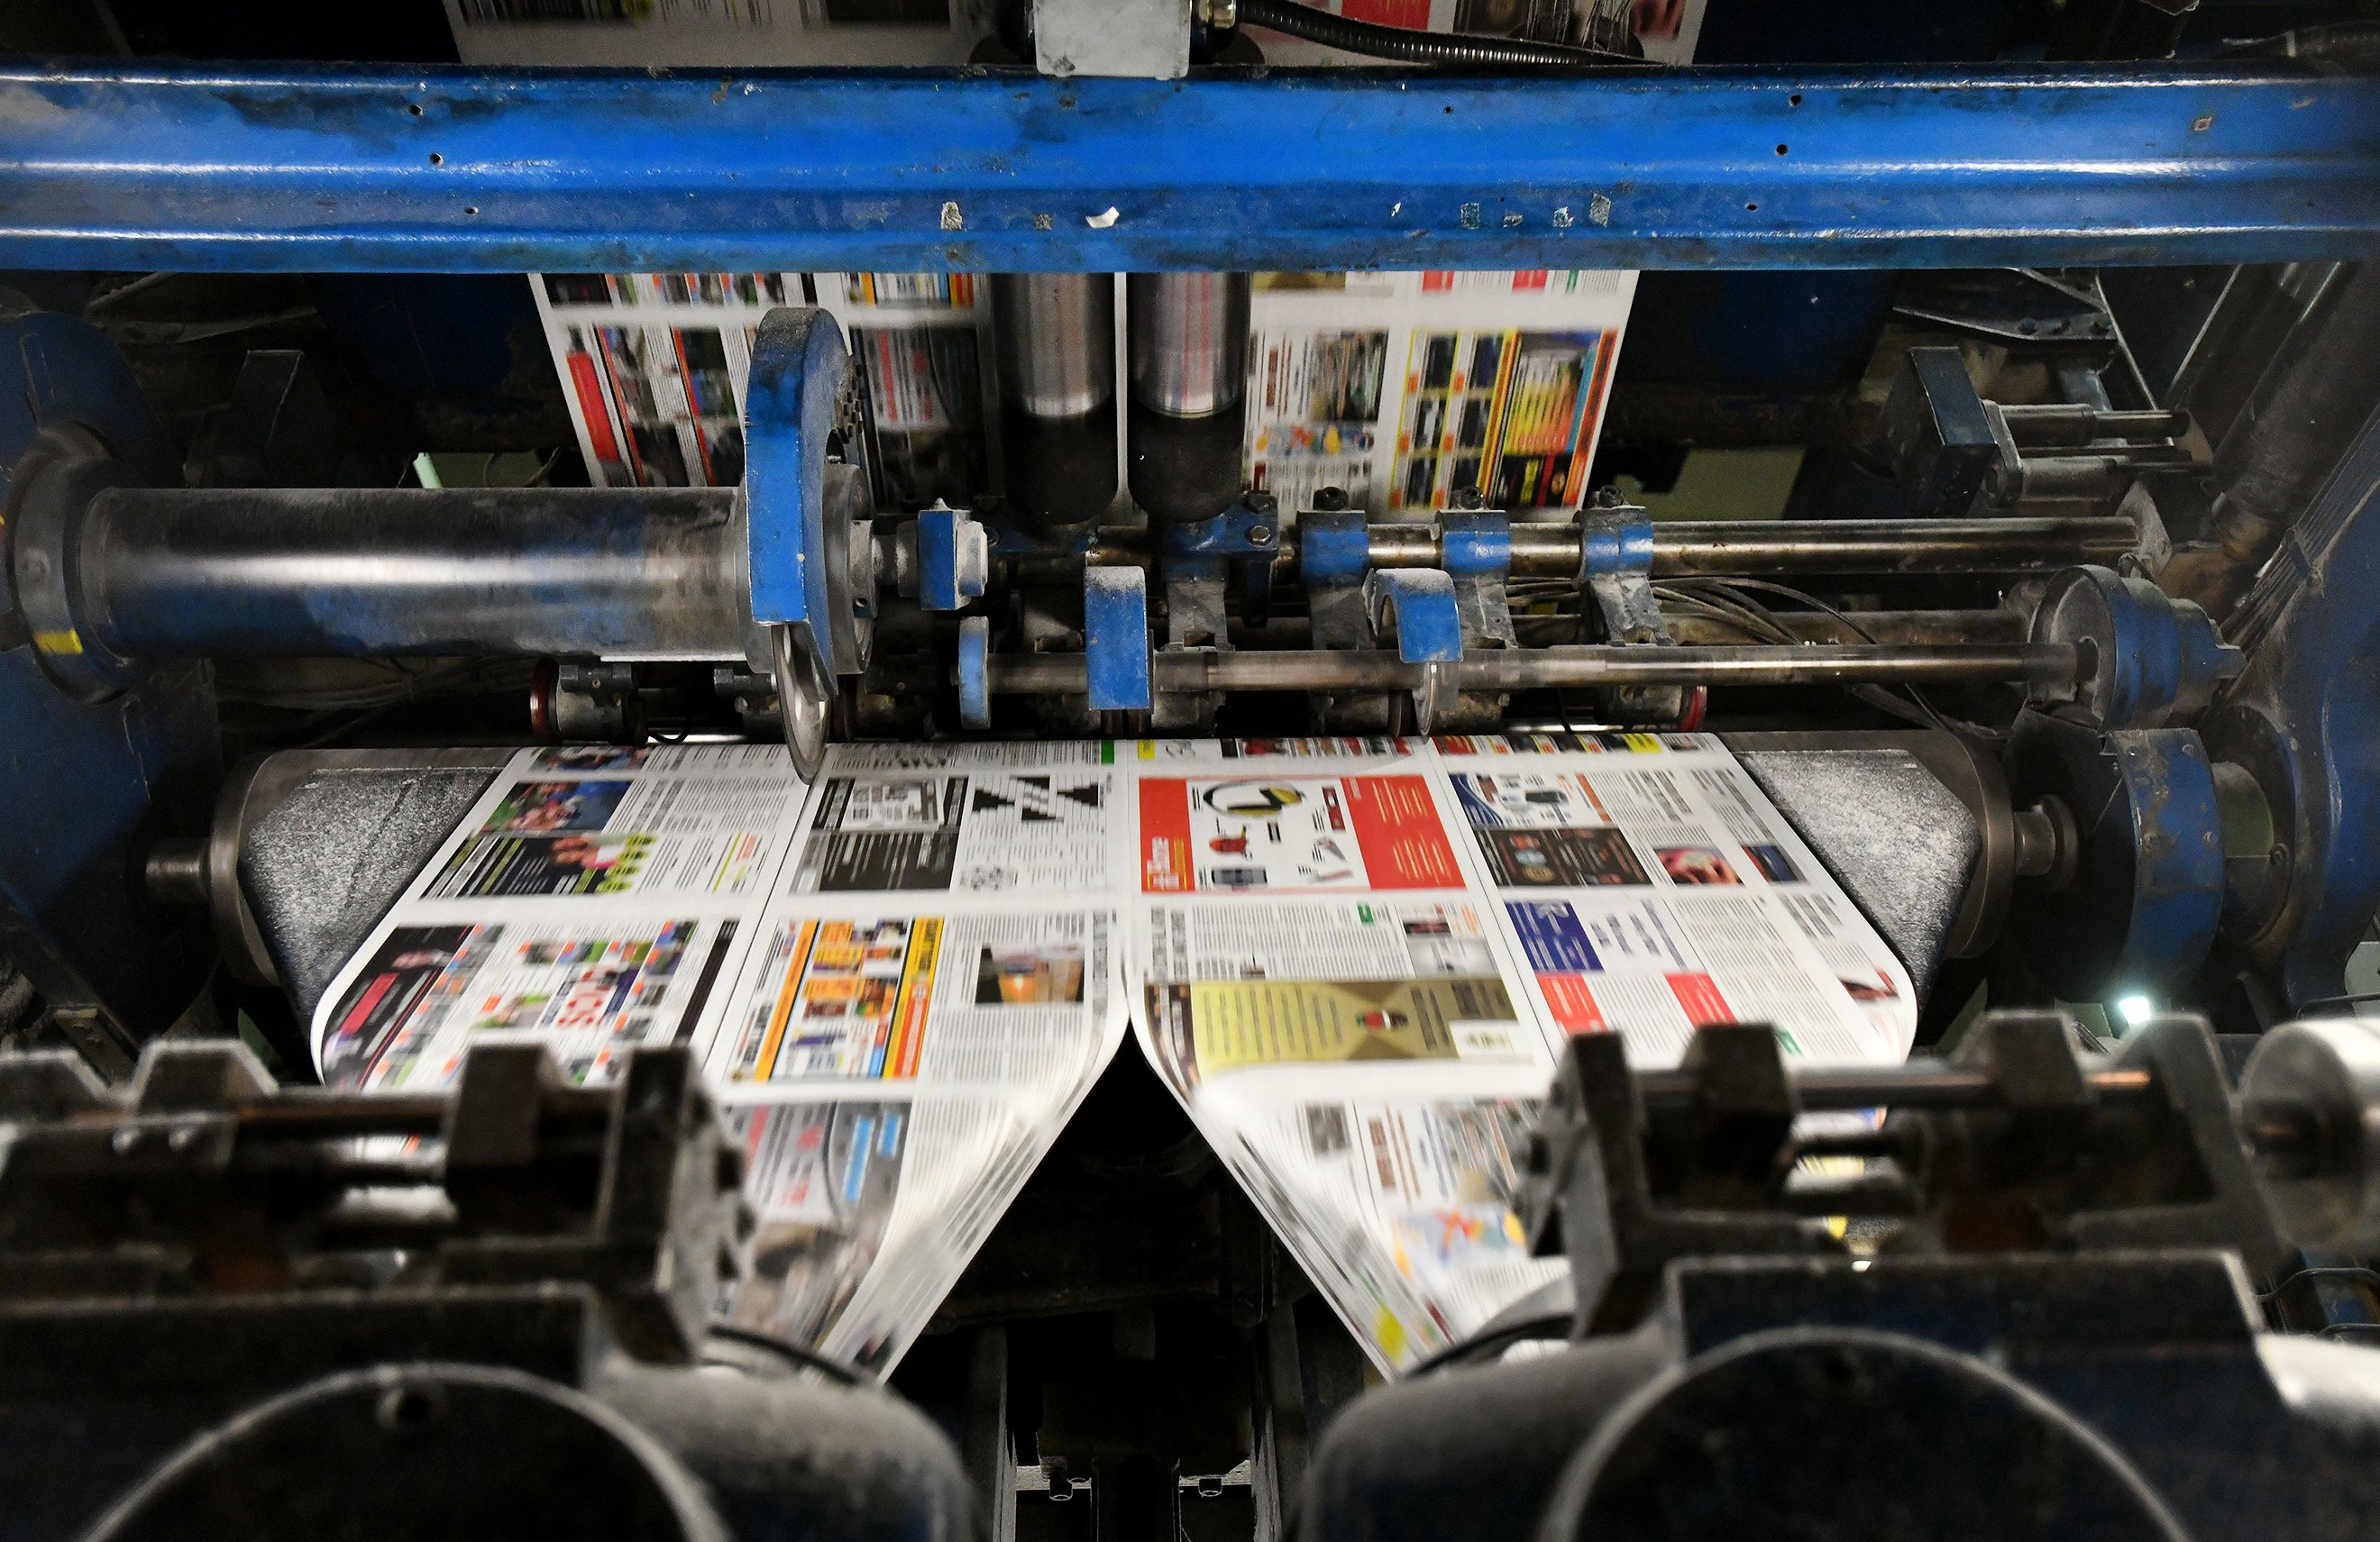 Papers being printed on the blue press.